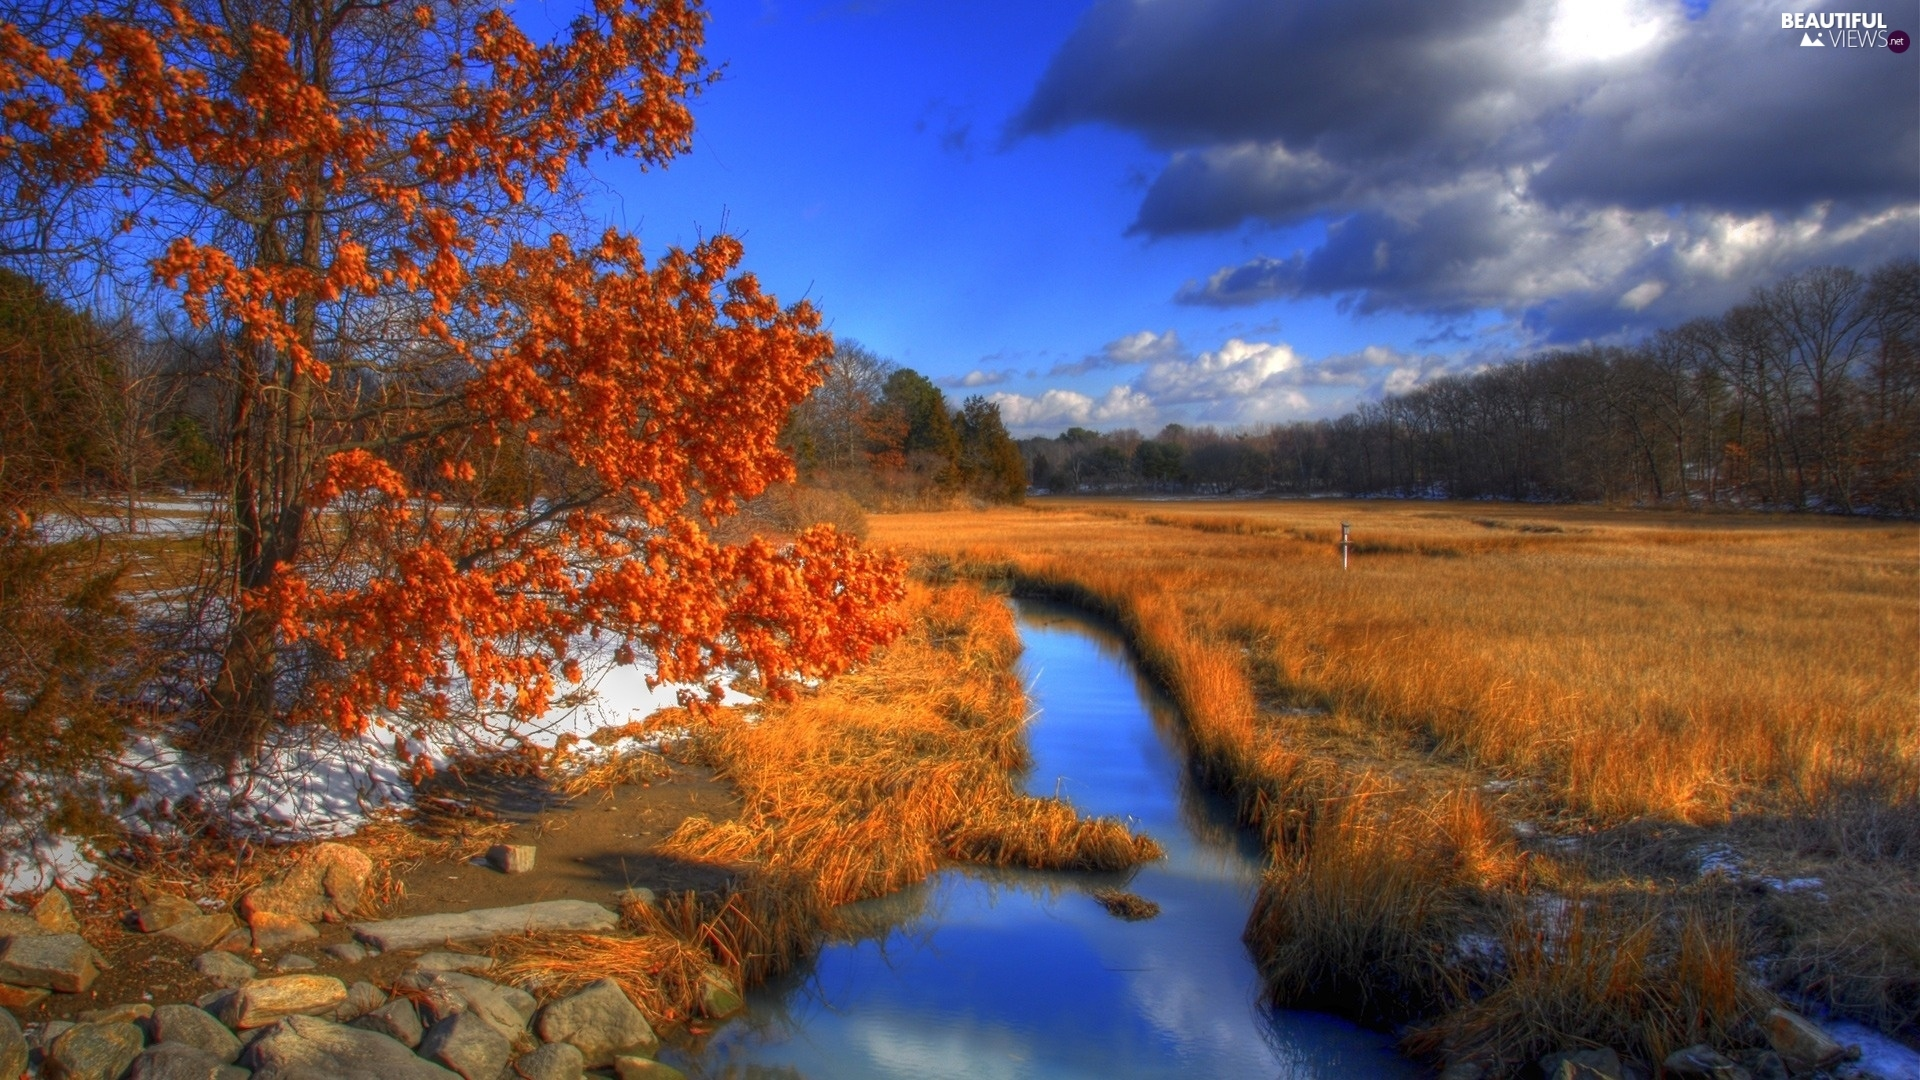 Meadow, autumn, forest, trees, grass, River